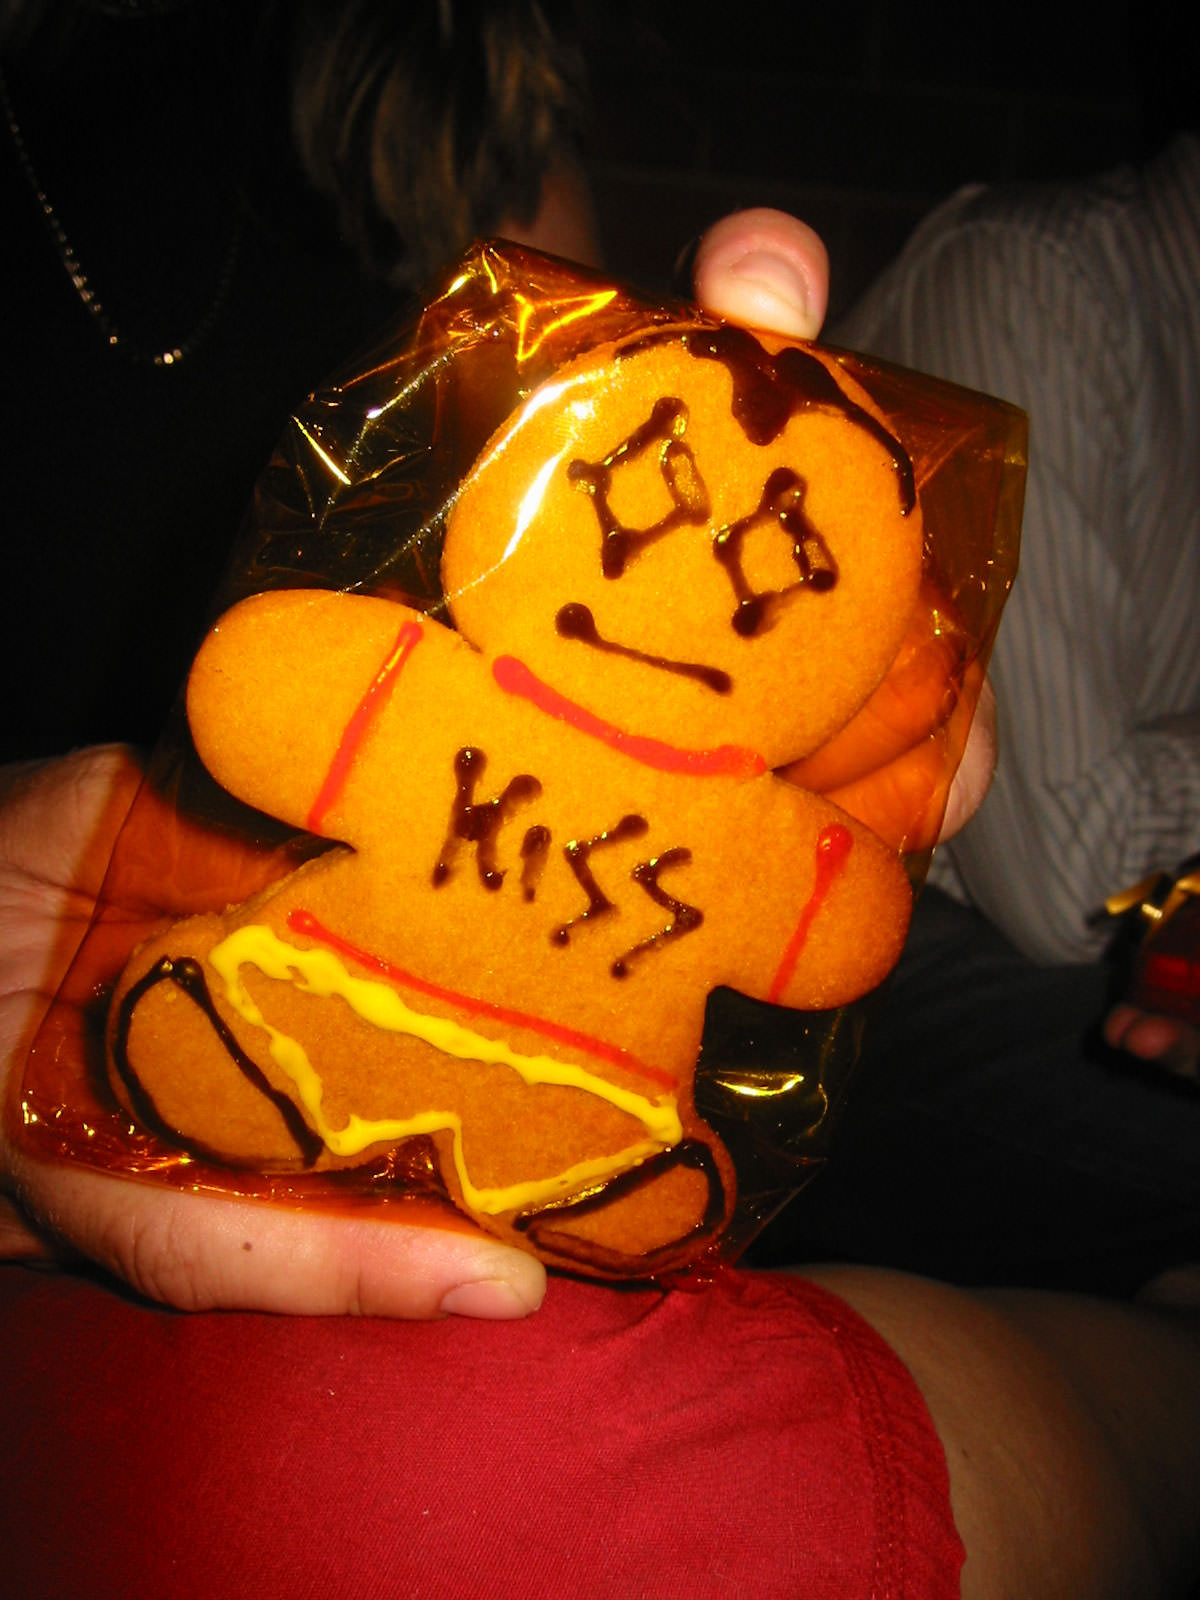 KISS Gingerbread Man